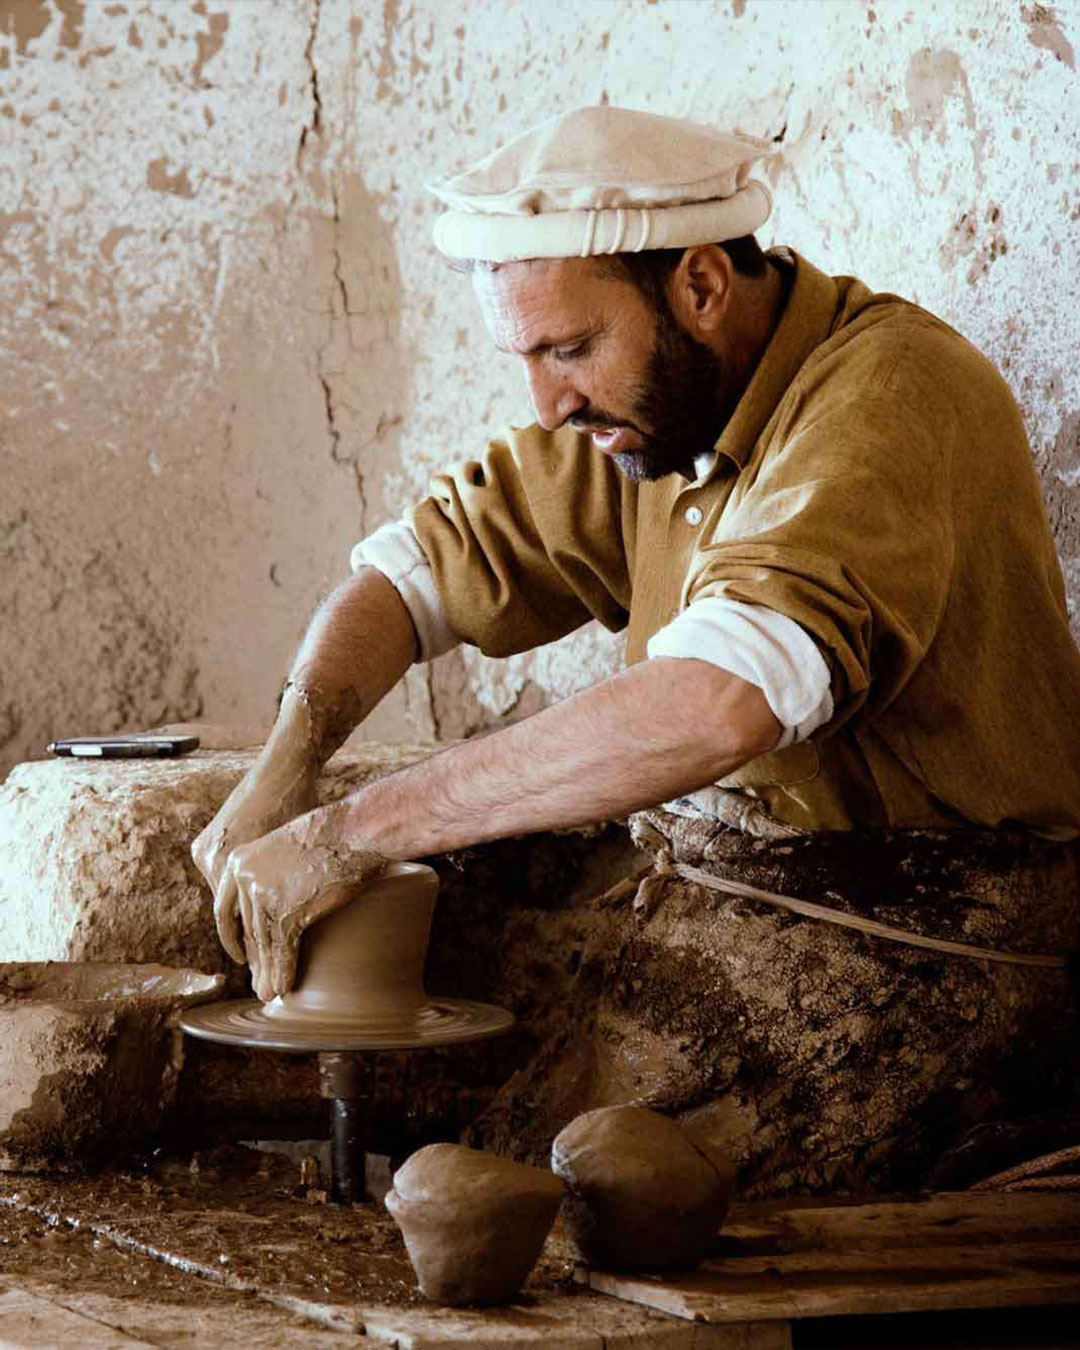 A craftsman focused on his pottery work